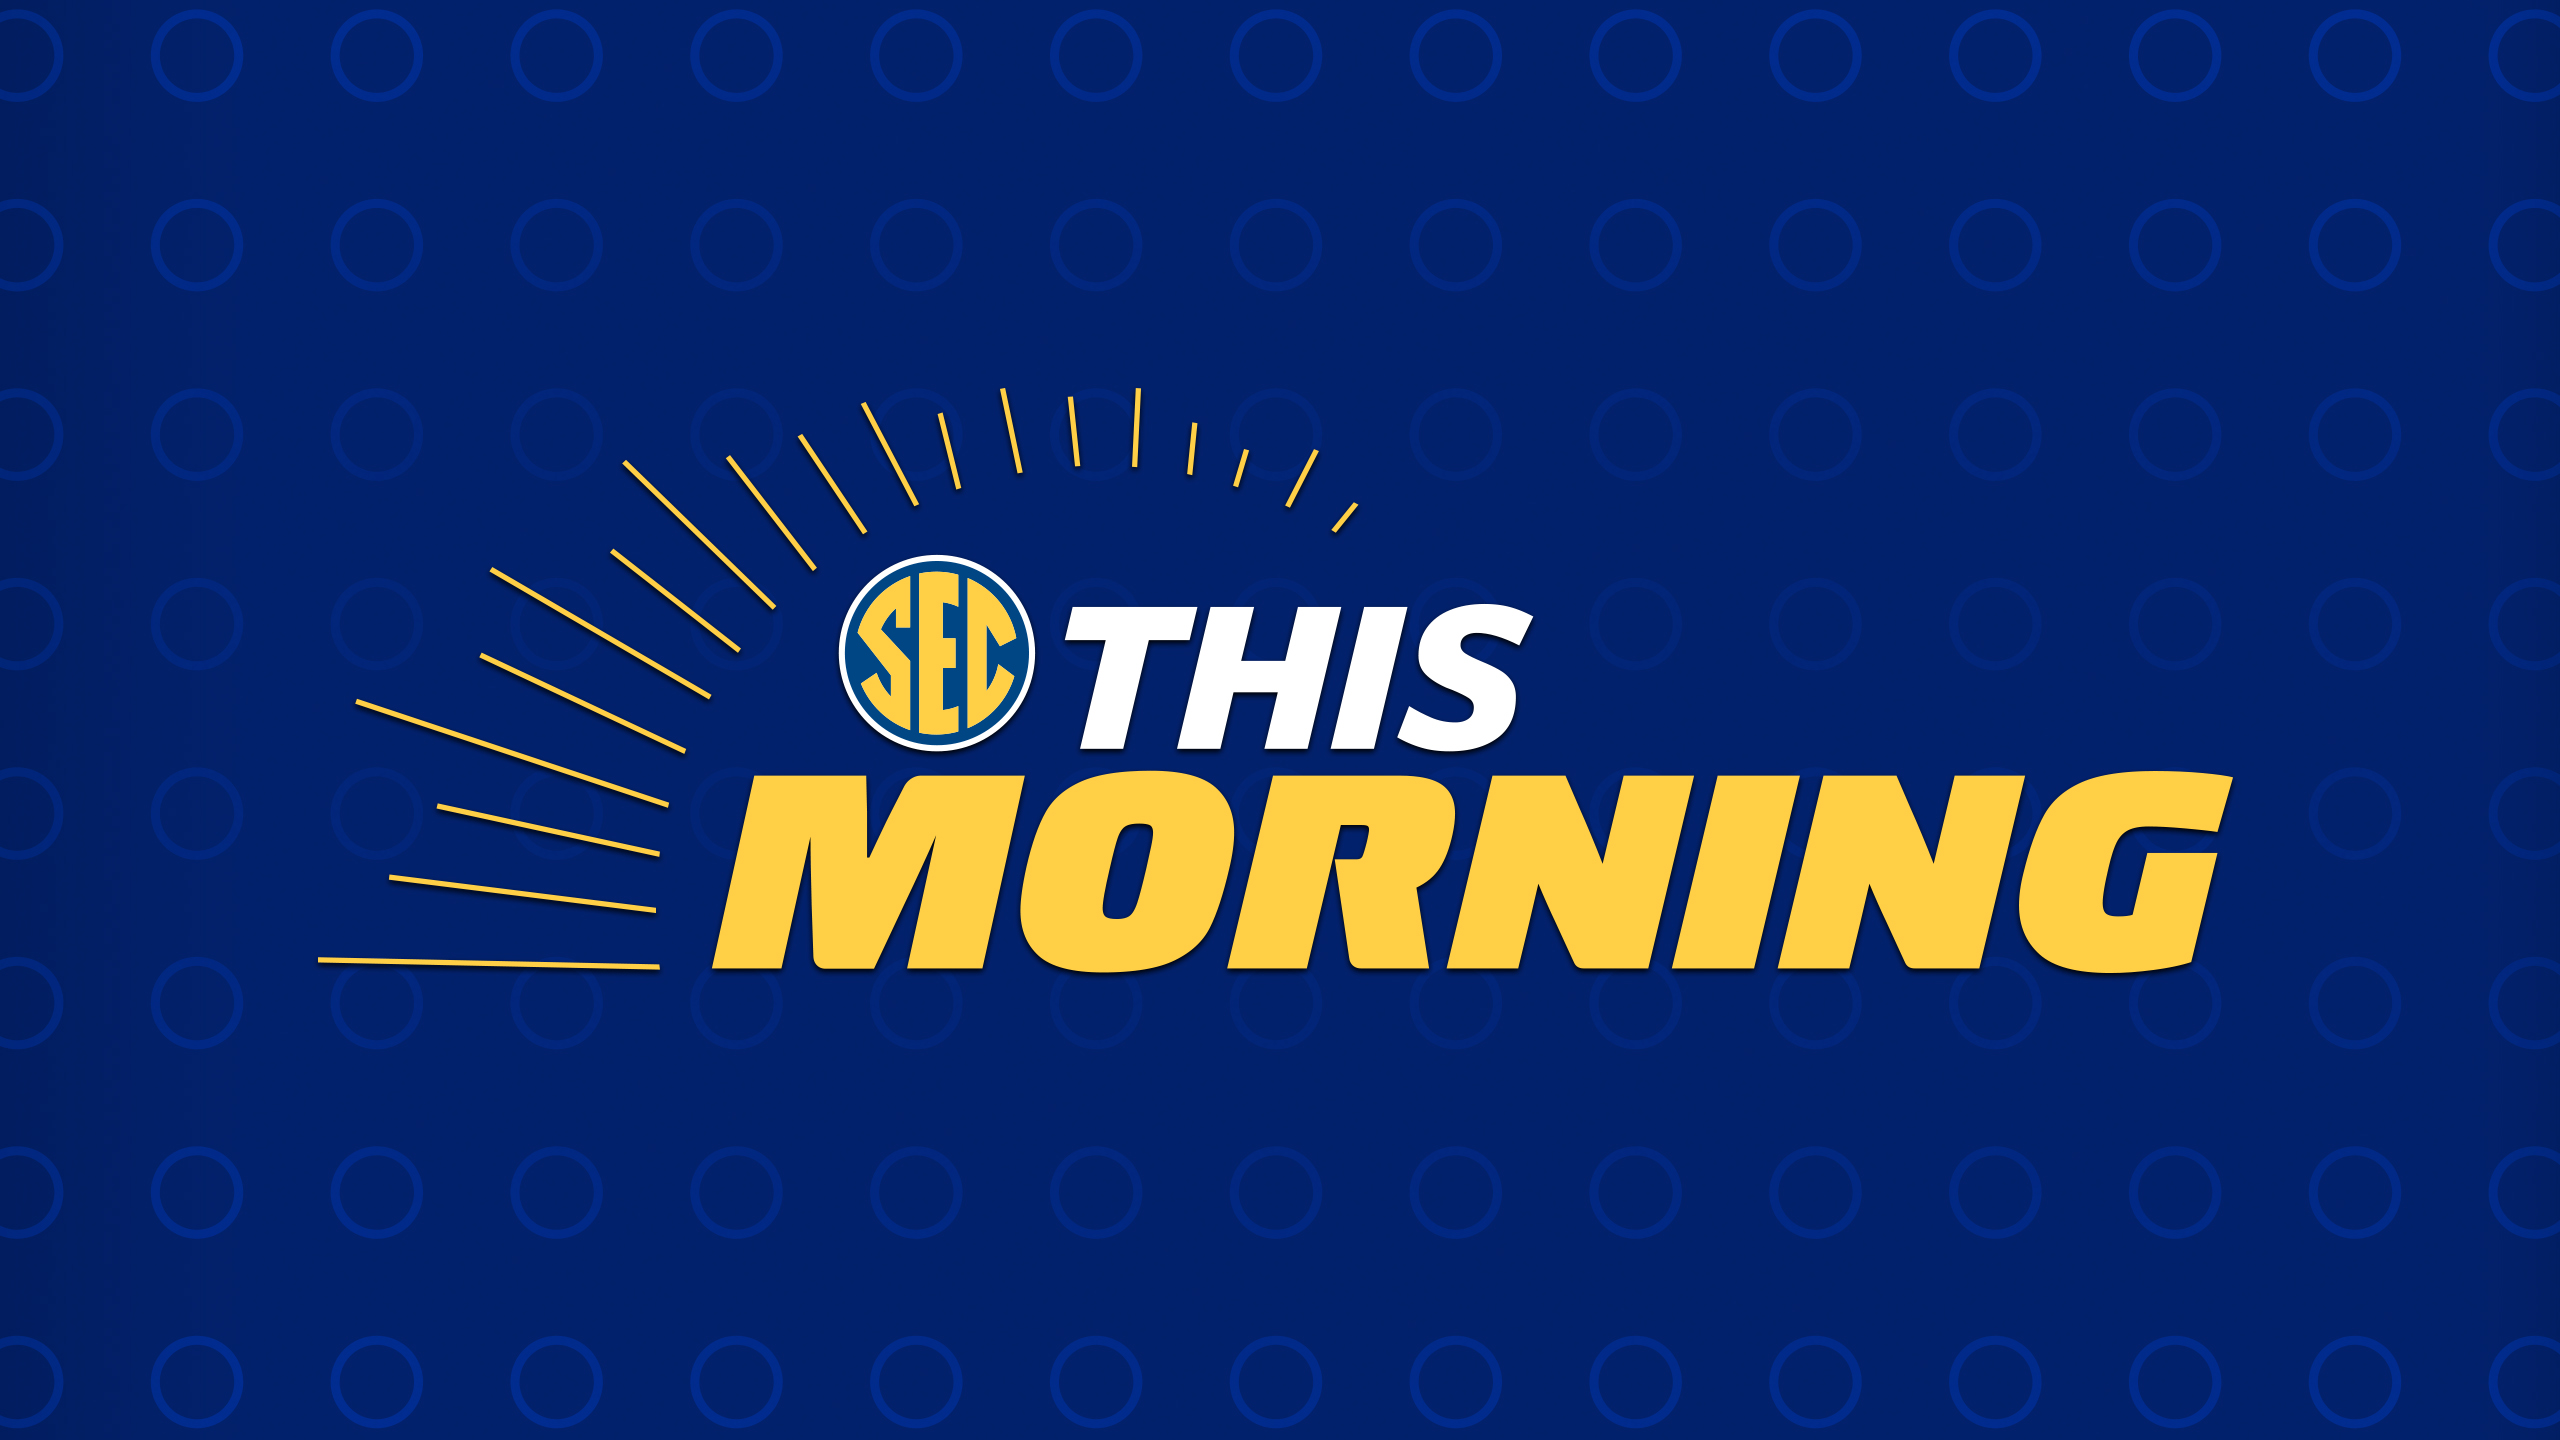 Tue, 11/20 - Best of SEC This Morning